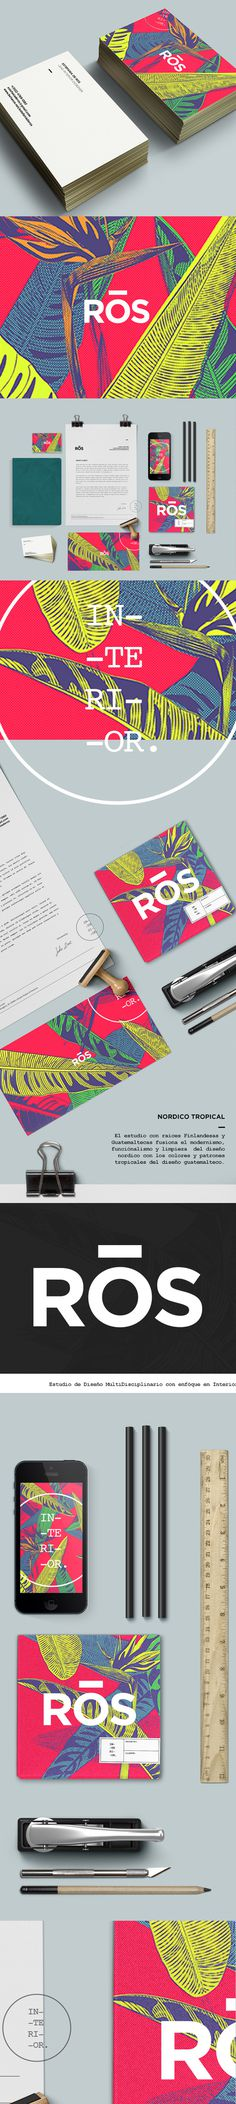 Ros Interior Design by Gustavo Quintana #brand